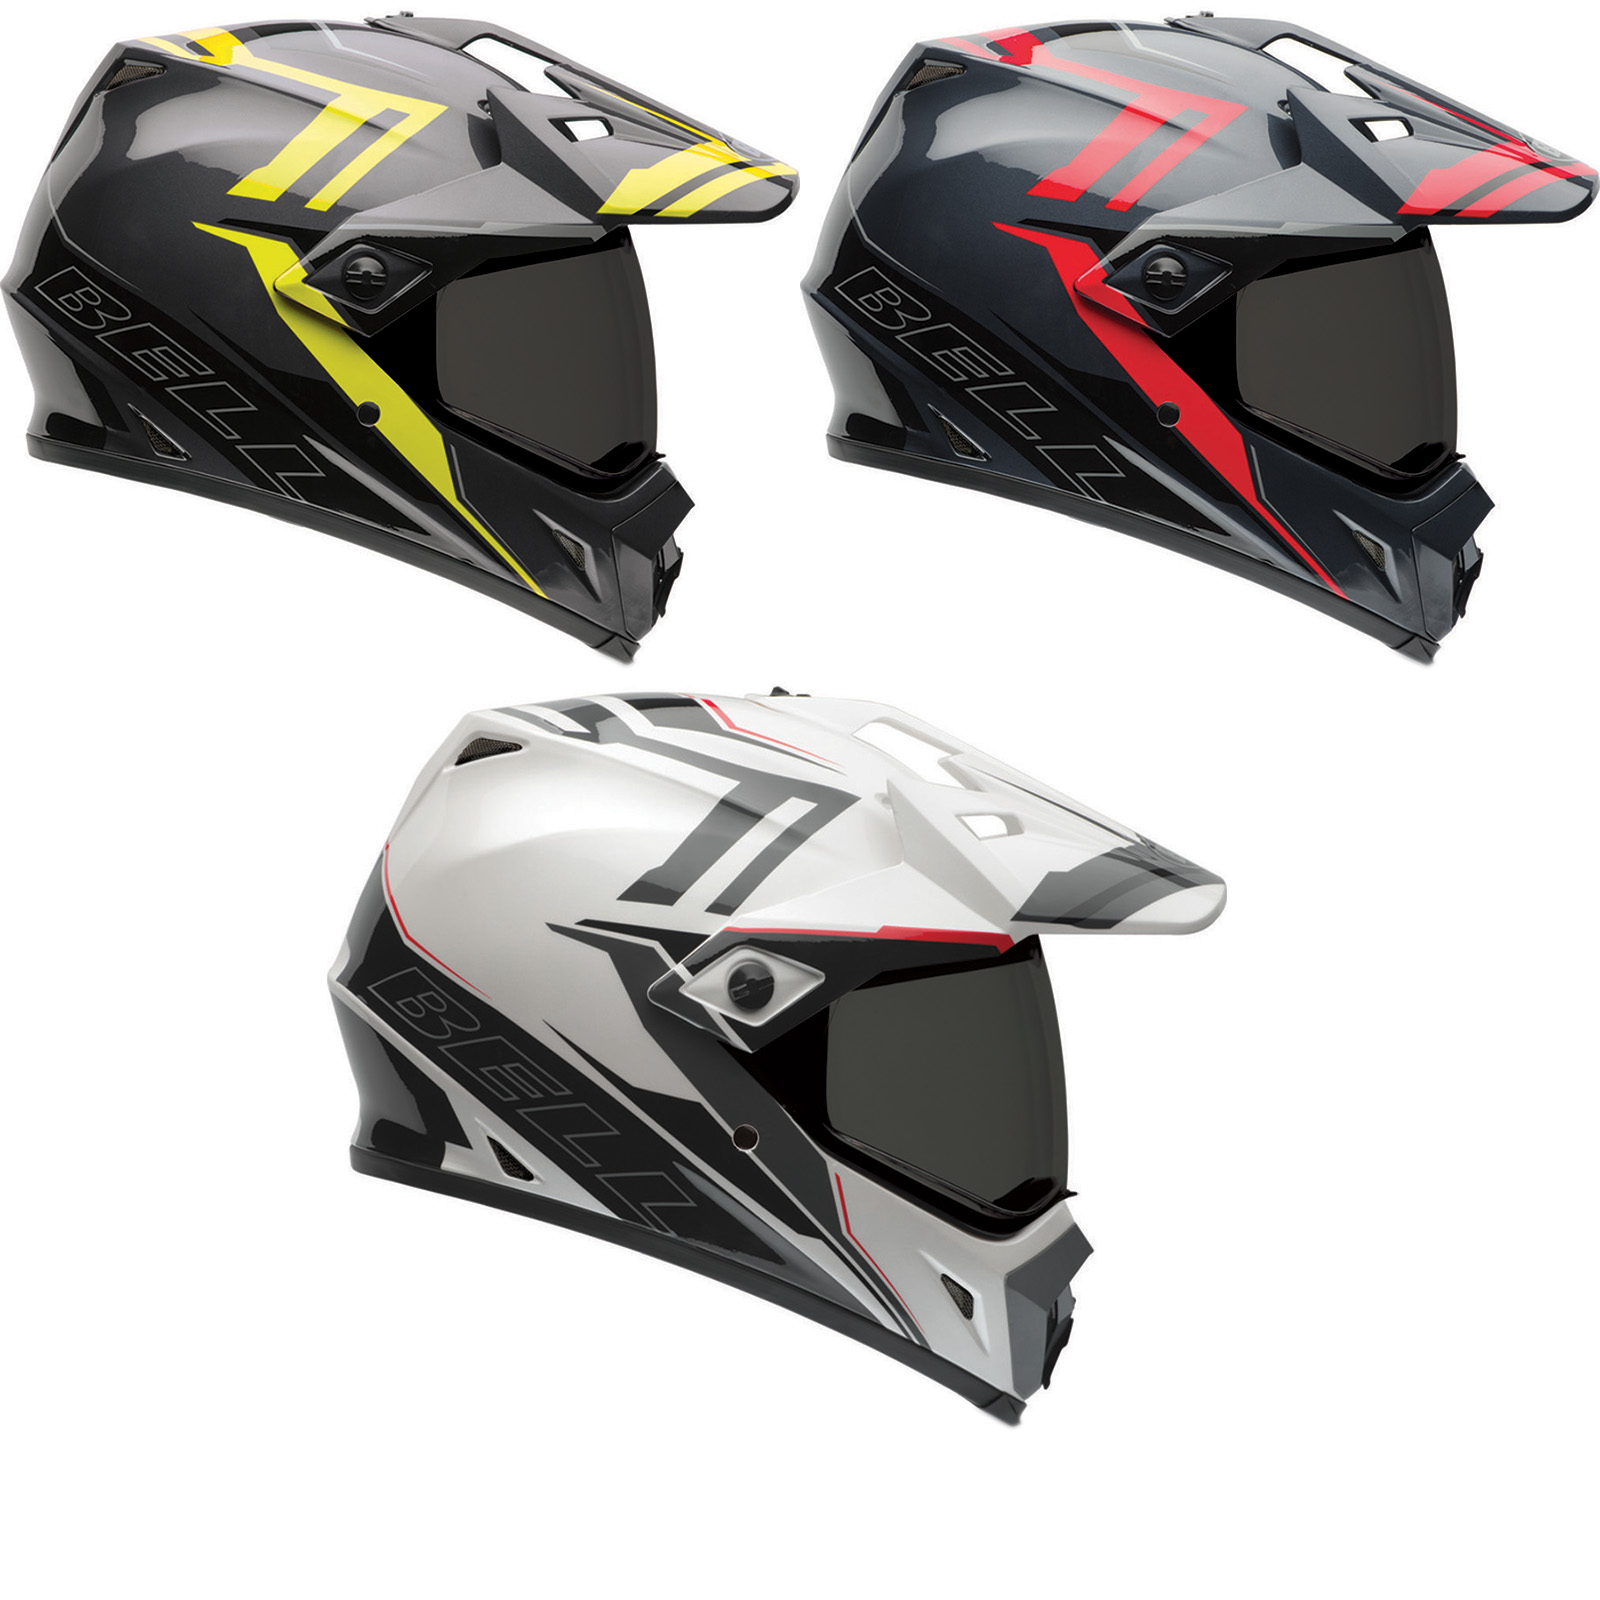 bell mx 9 adventure barricade motocross helmet mx off road enduro atv crash ebay. Black Bedroom Furniture Sets. Home Design Ideas